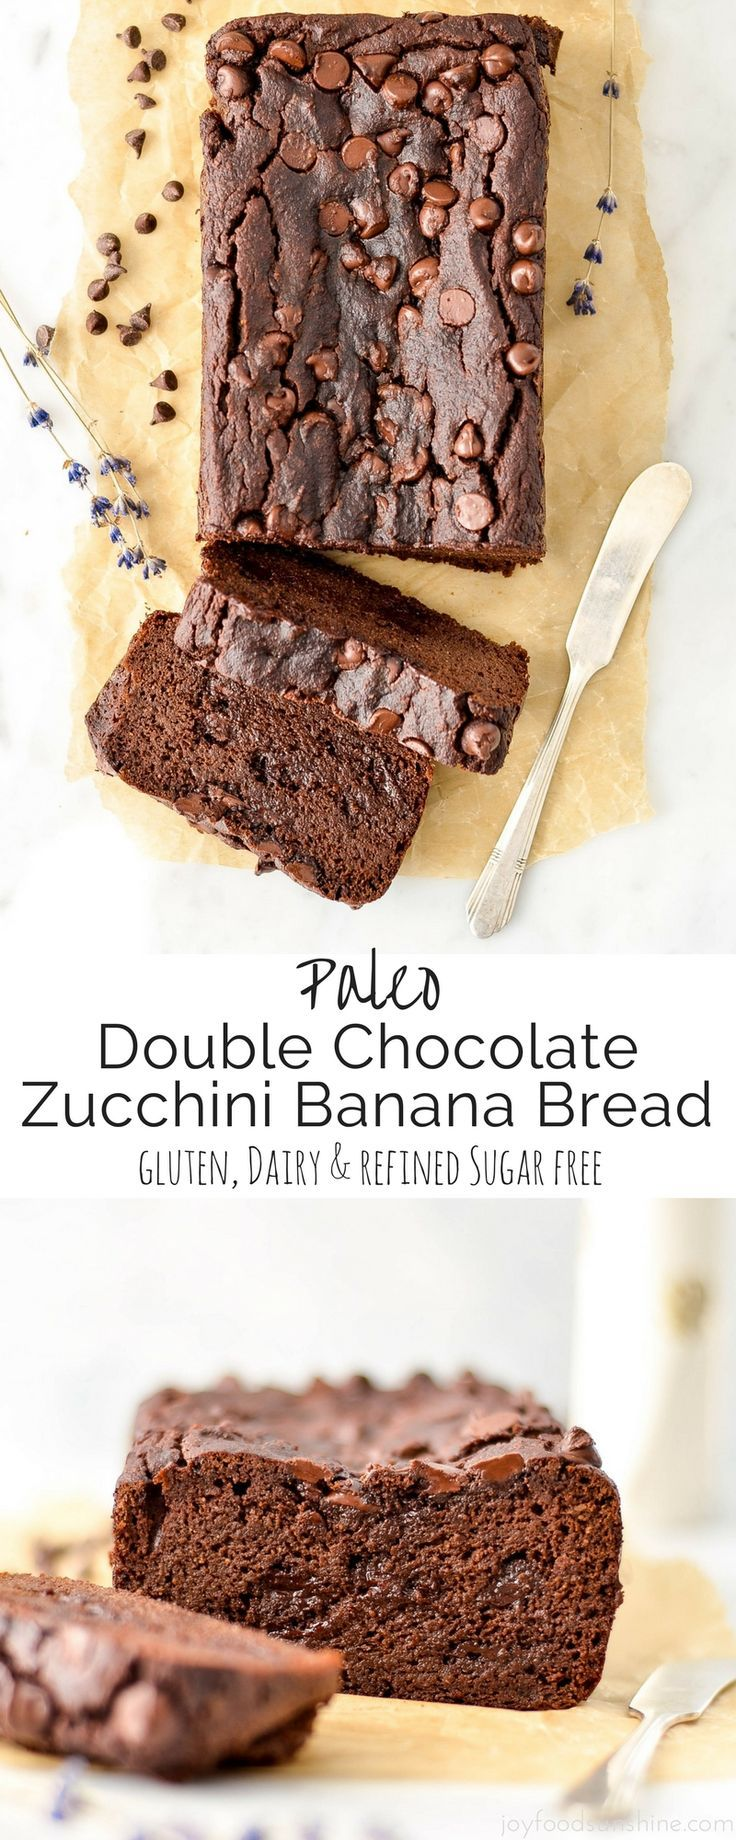 This Paleo Double Chocolate Zucchini Banana Bread Recipe is an easy, healthy & delicious way to eat your fruits and vegetables! Using a blender to whip up the batter makes the zucchini completely unde (Easy Bake Goods)